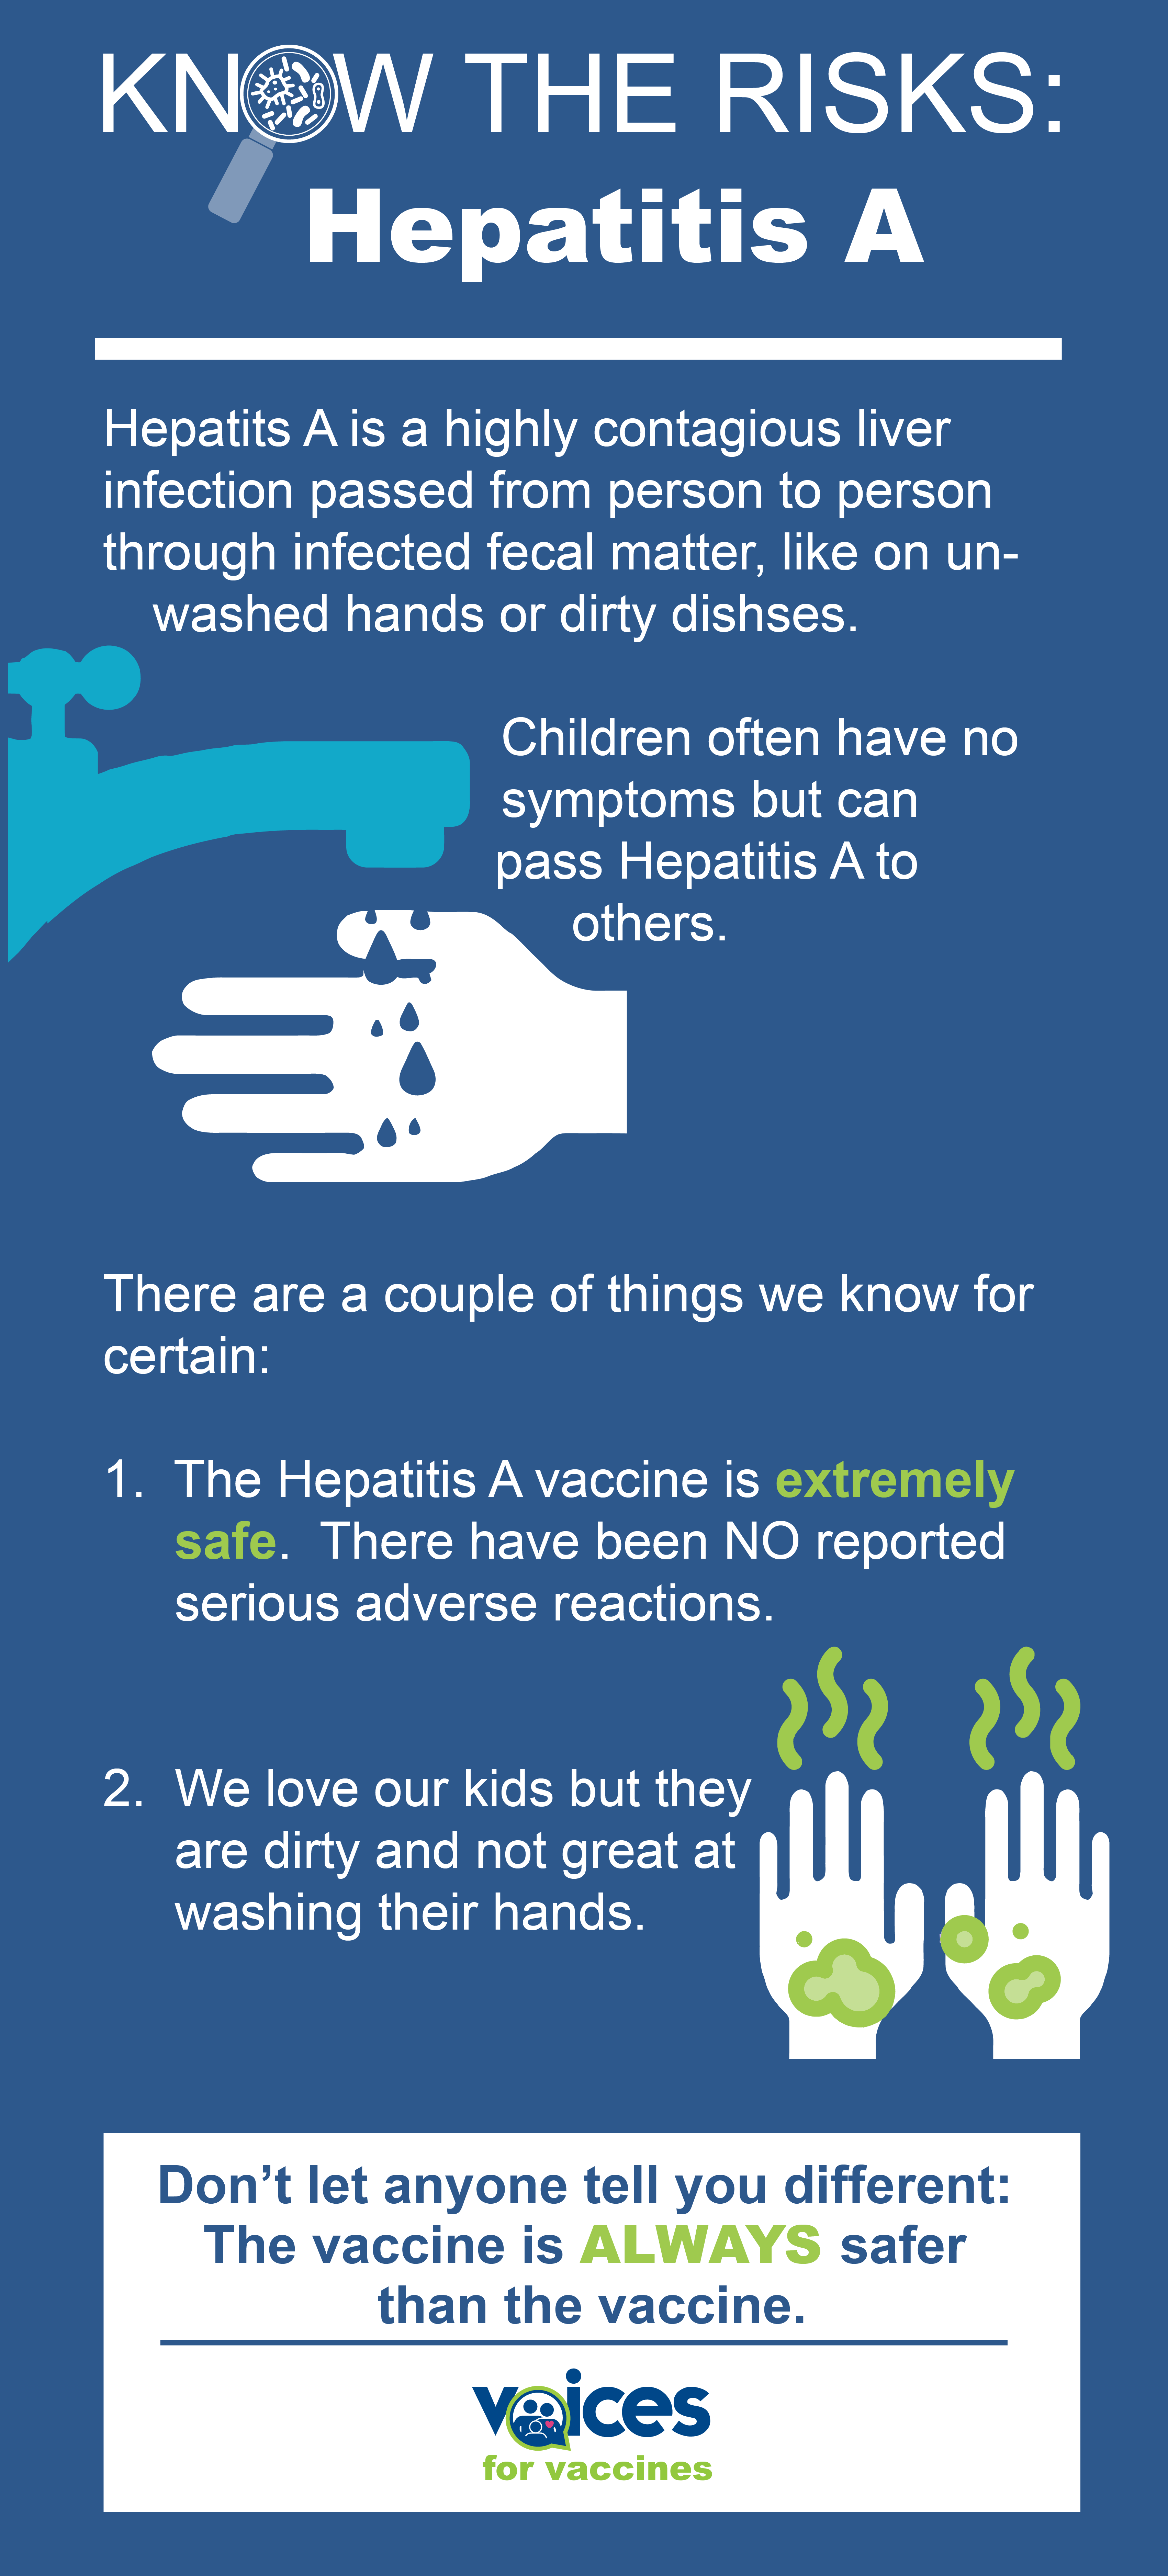 Know the risk: Hepatitis A FACT: Hep A is highly contagious and passed person-to-person through things like unwashed hands. FACT: Kids are dirty and not great at washing hands. FACT: Many kids infected with Hep A have no symptoms but can pass it on to others like their grandparents. FACT: The Hep A vaccine is EXTREMELY safe. There have been NO reported serious adverse reactions to the vaccine. FACT: The Hep A vaccine is the BEST way to protect your child and family from Hepatitis A.